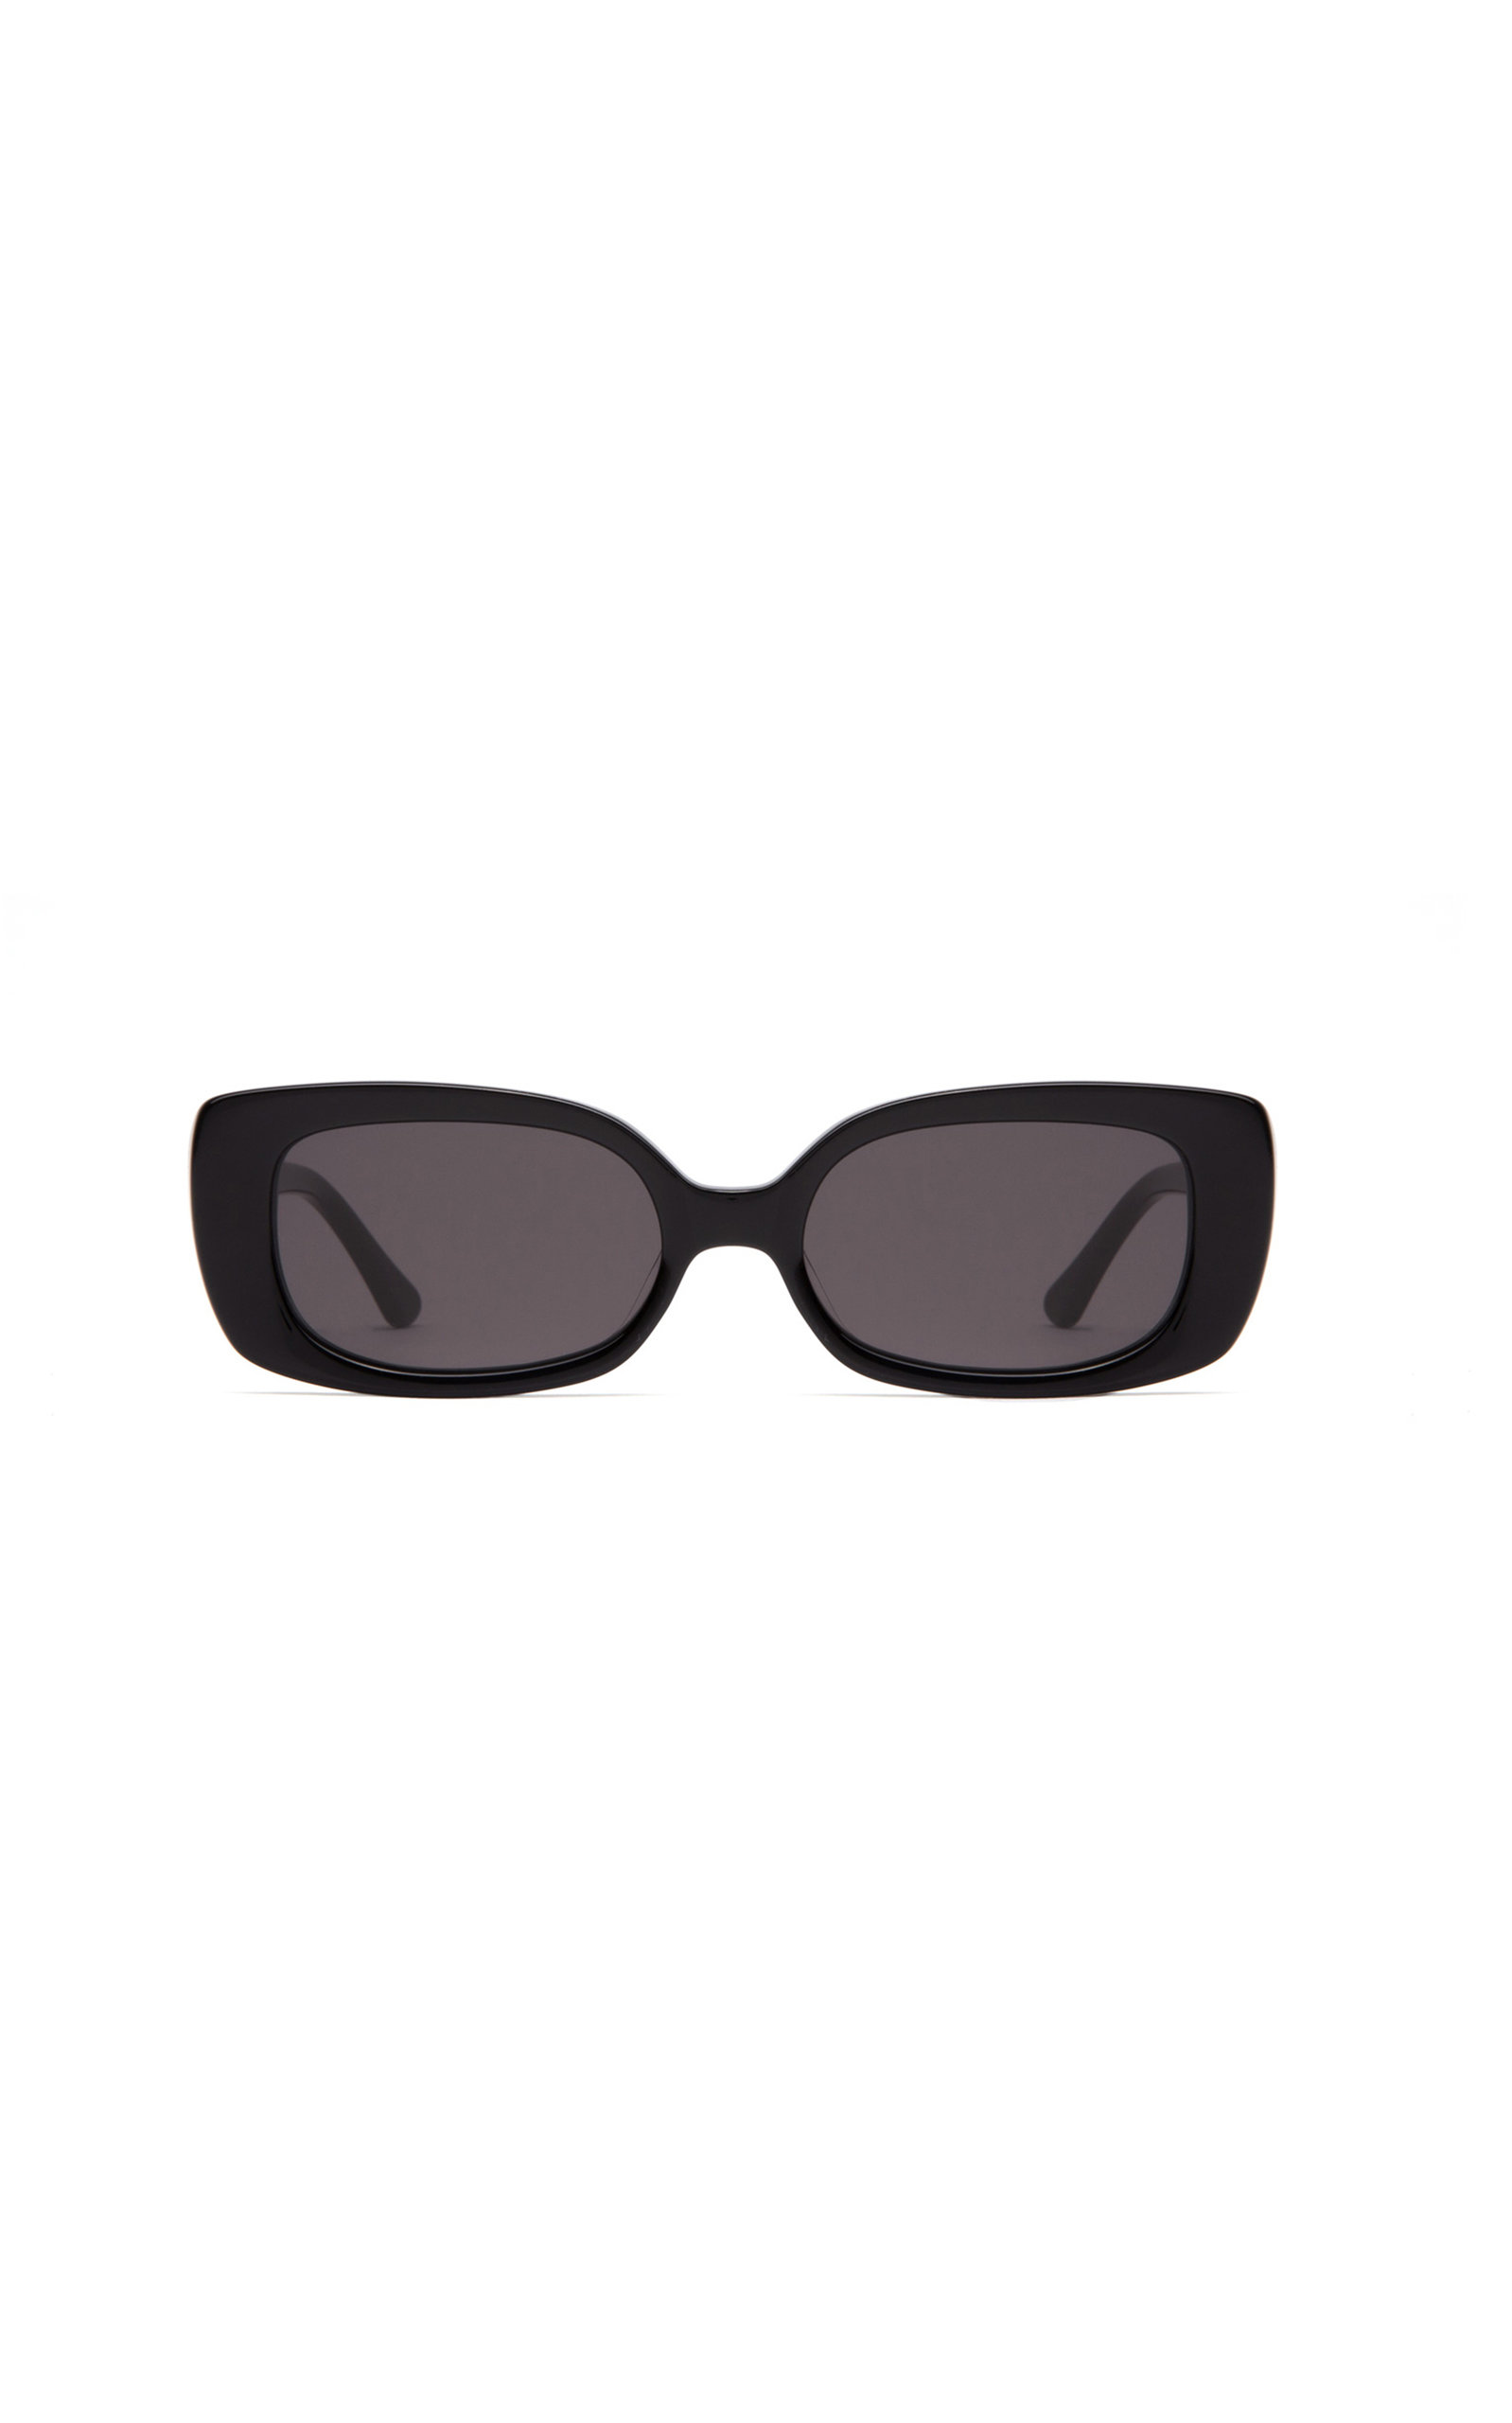 Zou Bisou Square-Frame Sunglasses by Velvet Canyon, available on modaoperandi.com for $190 Kendall Jenner Sunglasses Exact Product